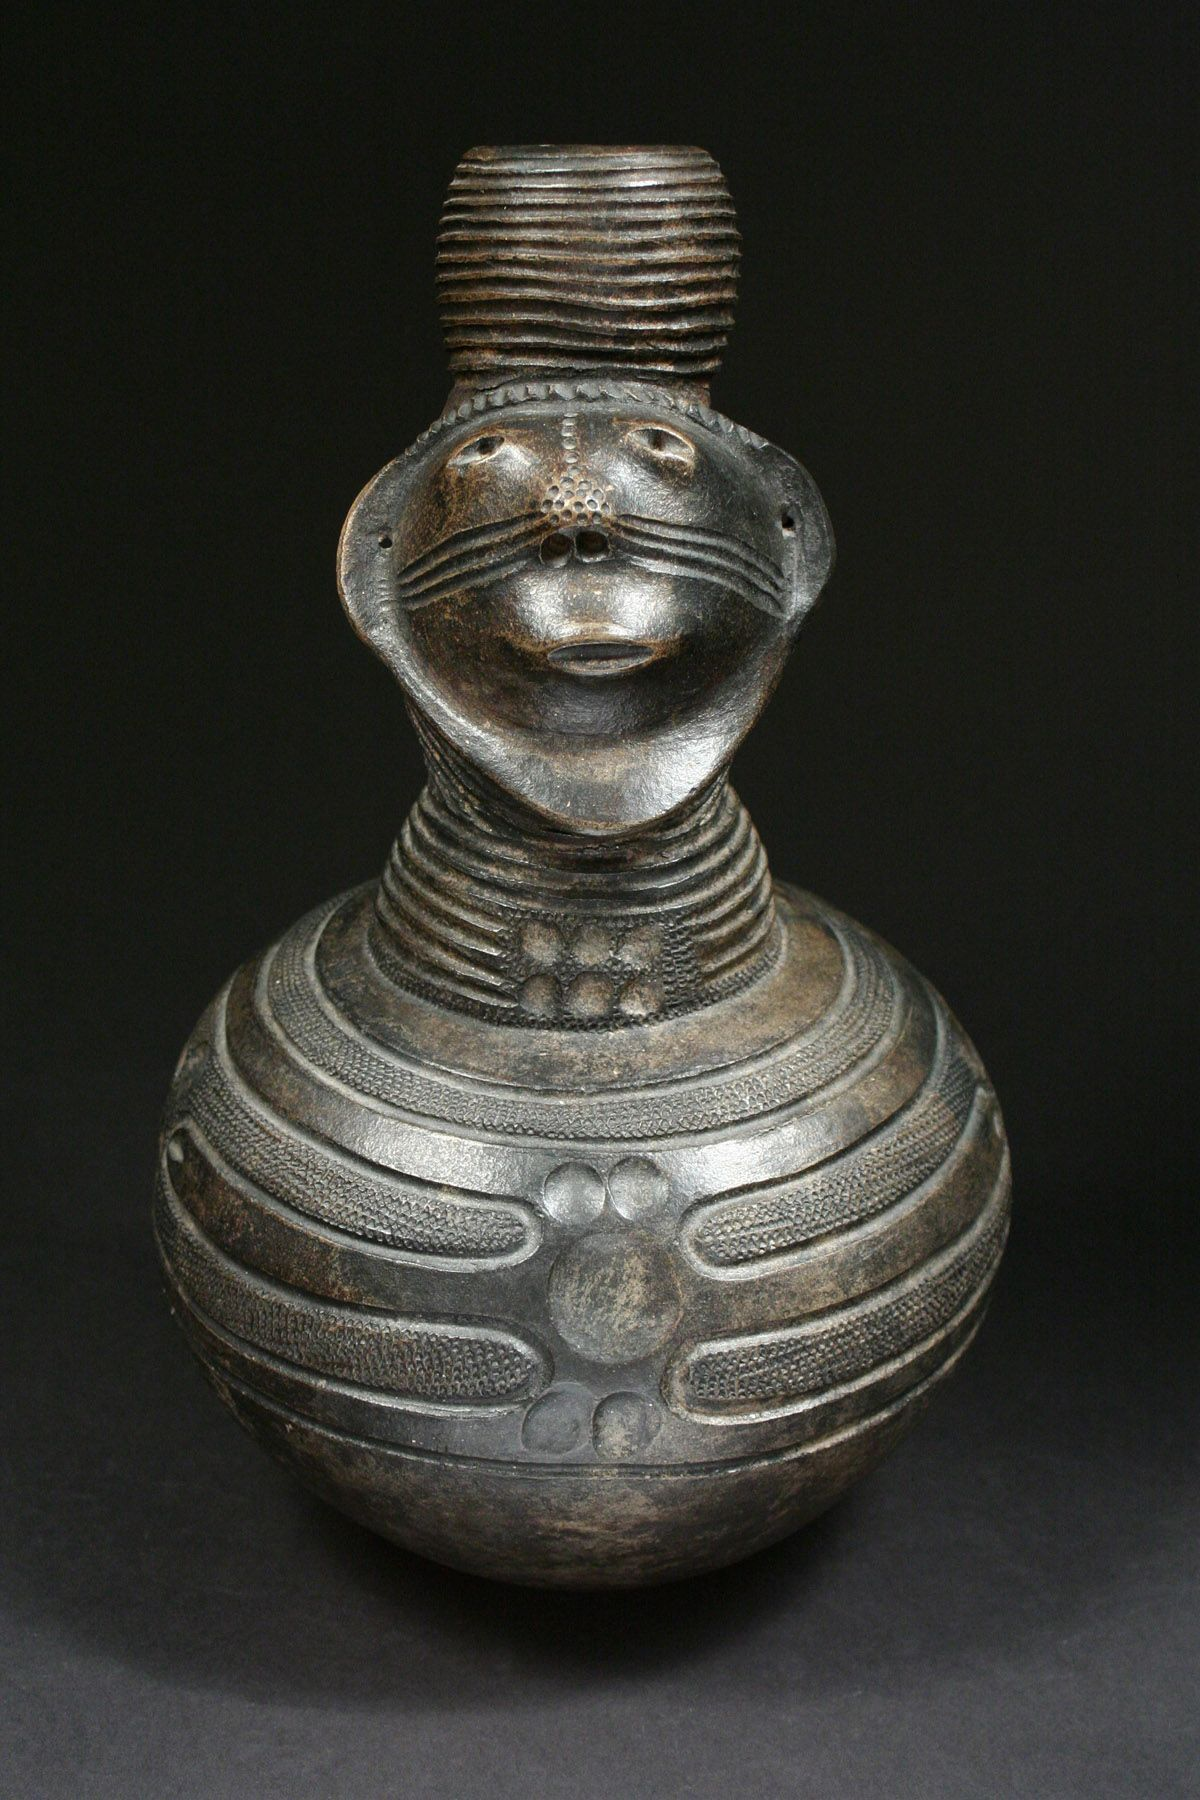 Figural Vessel Zande, D.R. Congo Smudge fired ceramic Early 20th century Robert Dowling